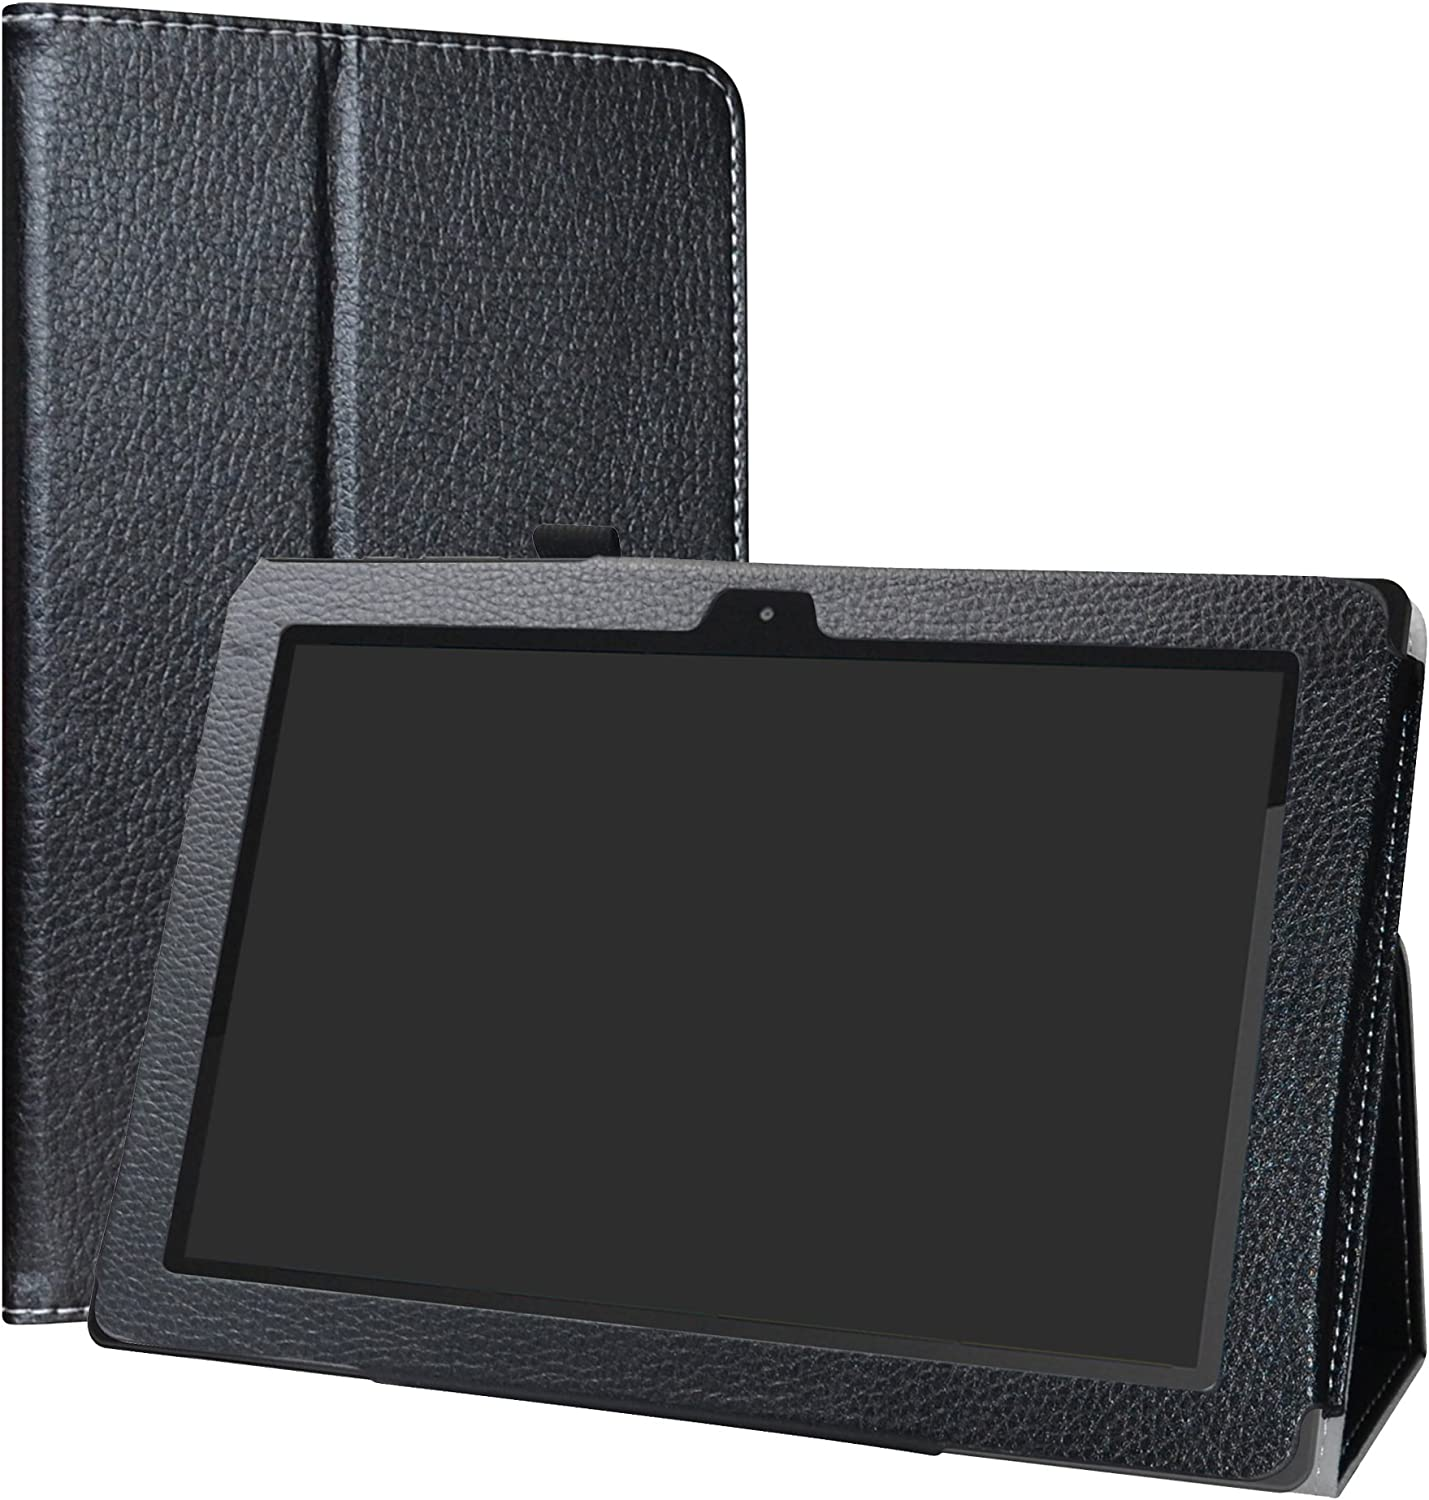 Astro Tab A10 Case,LiuShan PU Leather Slim Folding Stand Cover for Astro Tab A10 – 10 inch Android Tablet,Black